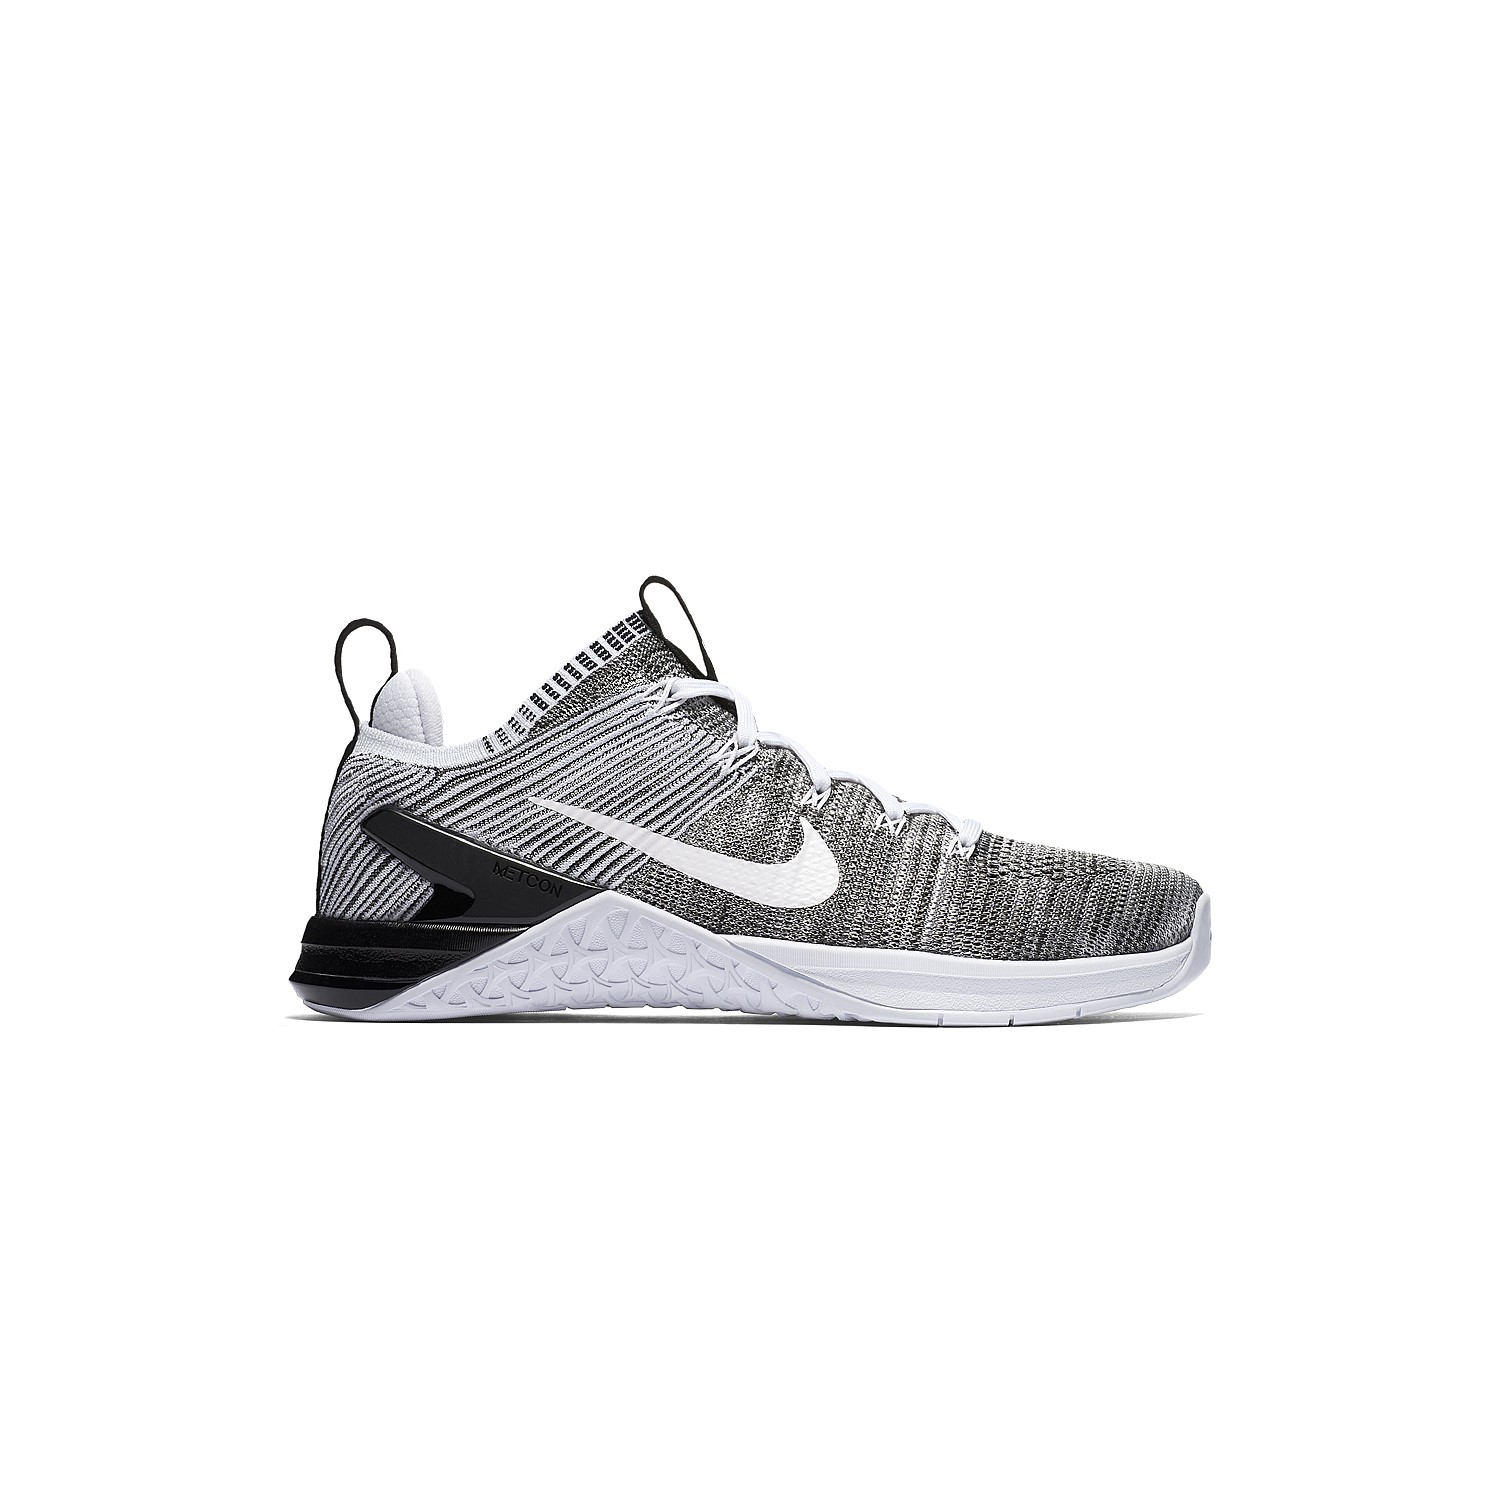 68861e28106d Metcon DSX Flyknit 2 Womens On Sale. Previous. Next. Nike